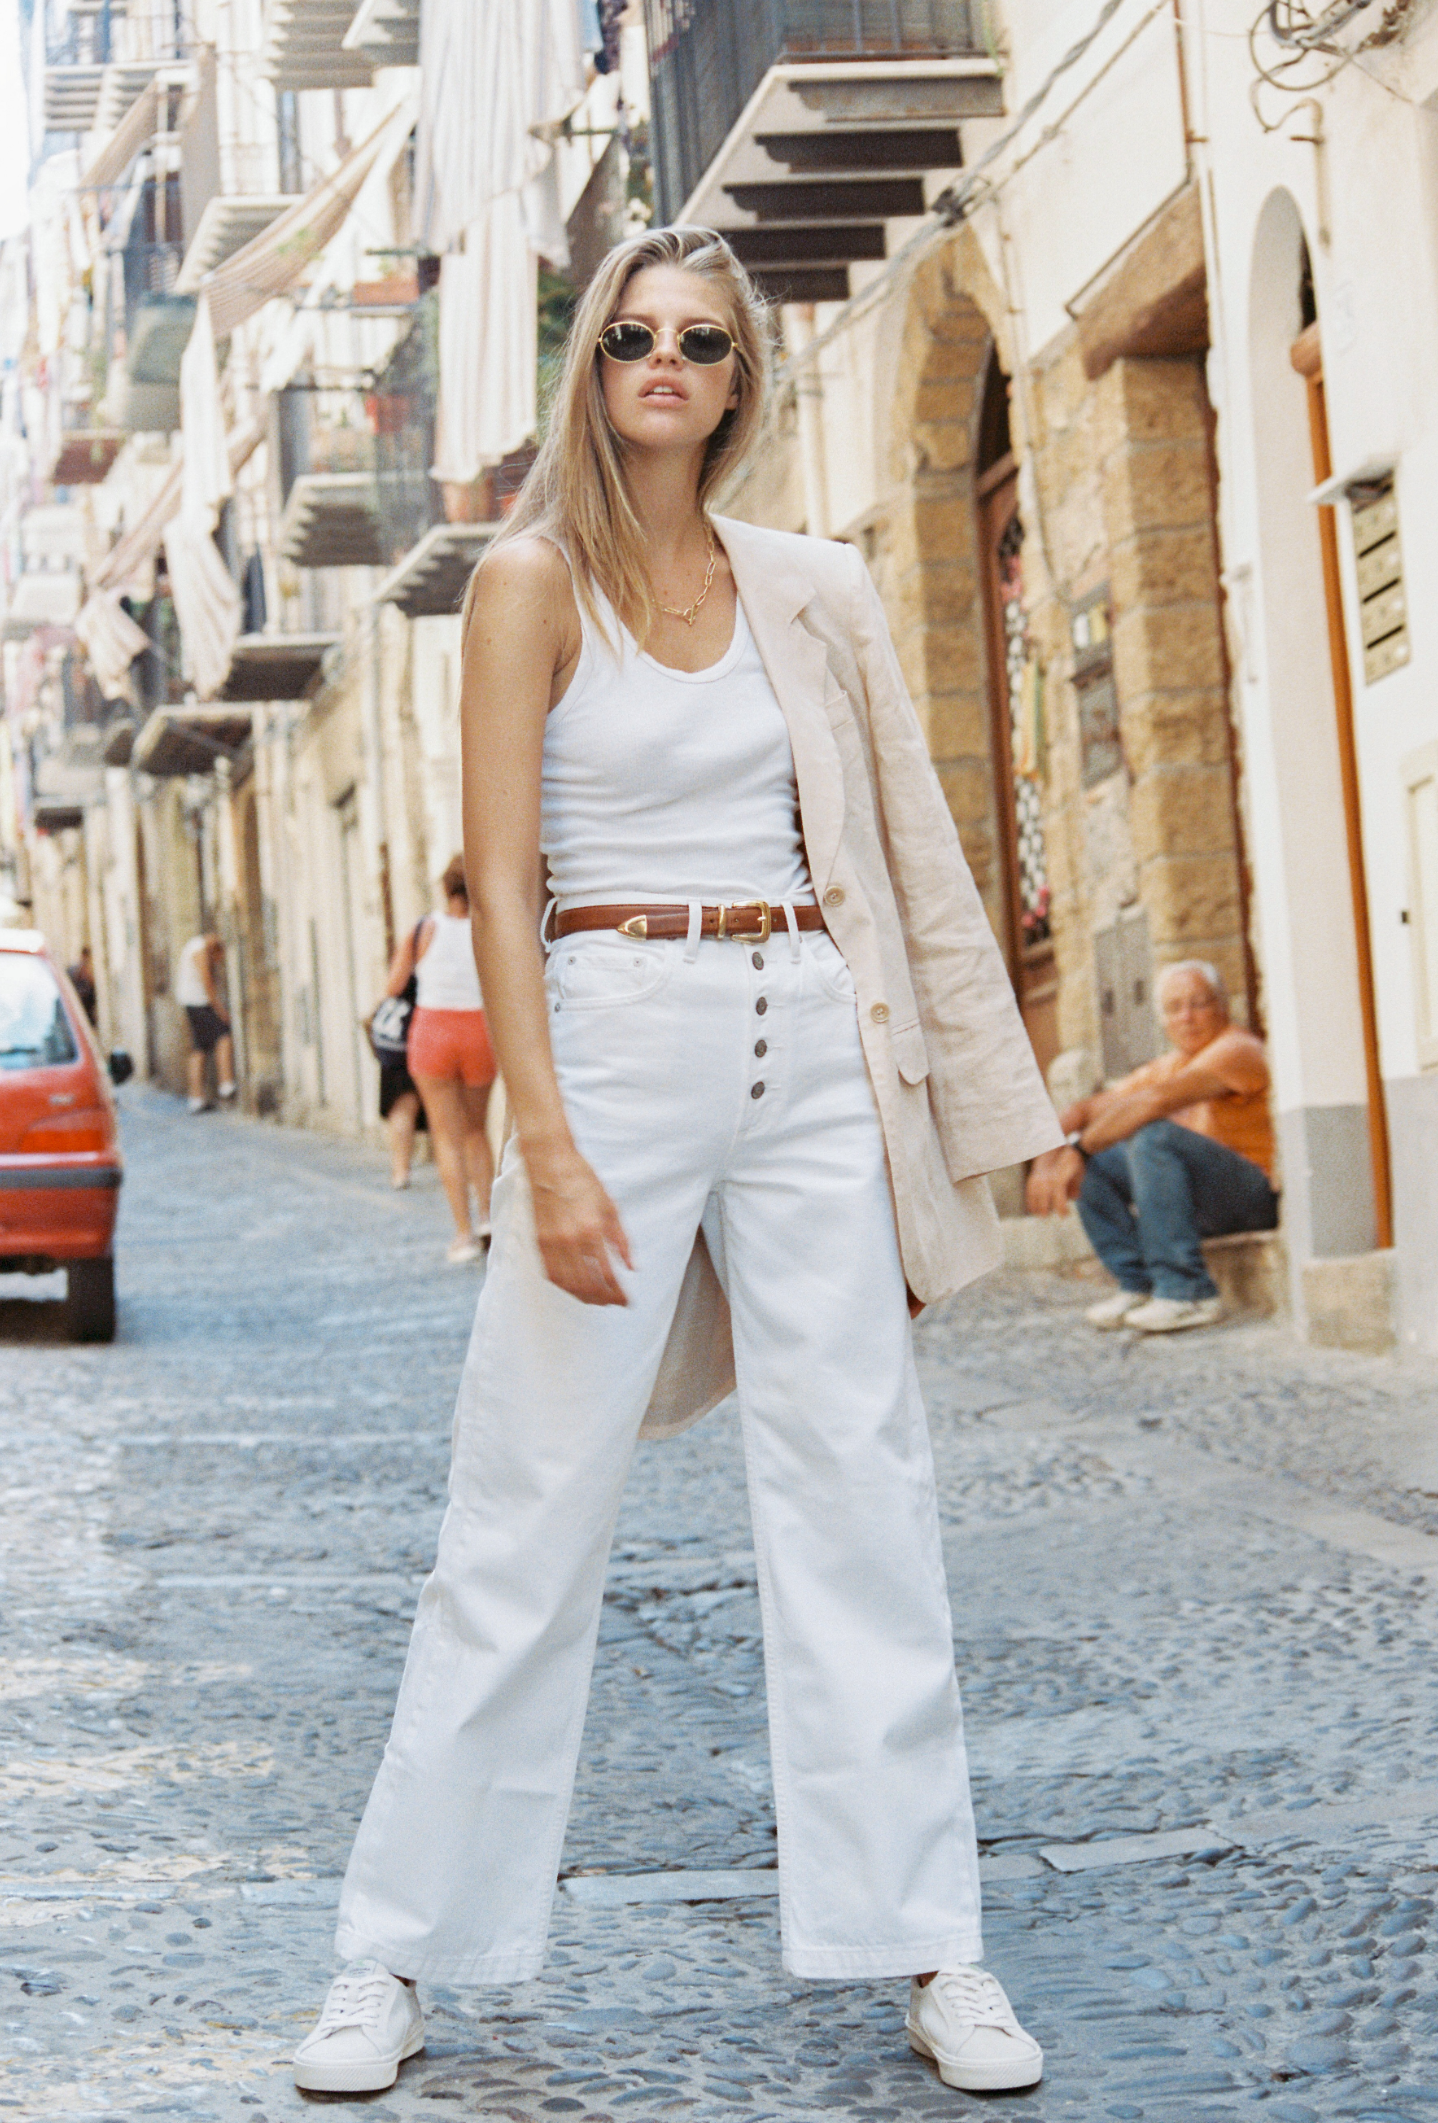 woman standing on a street modelling white jeans